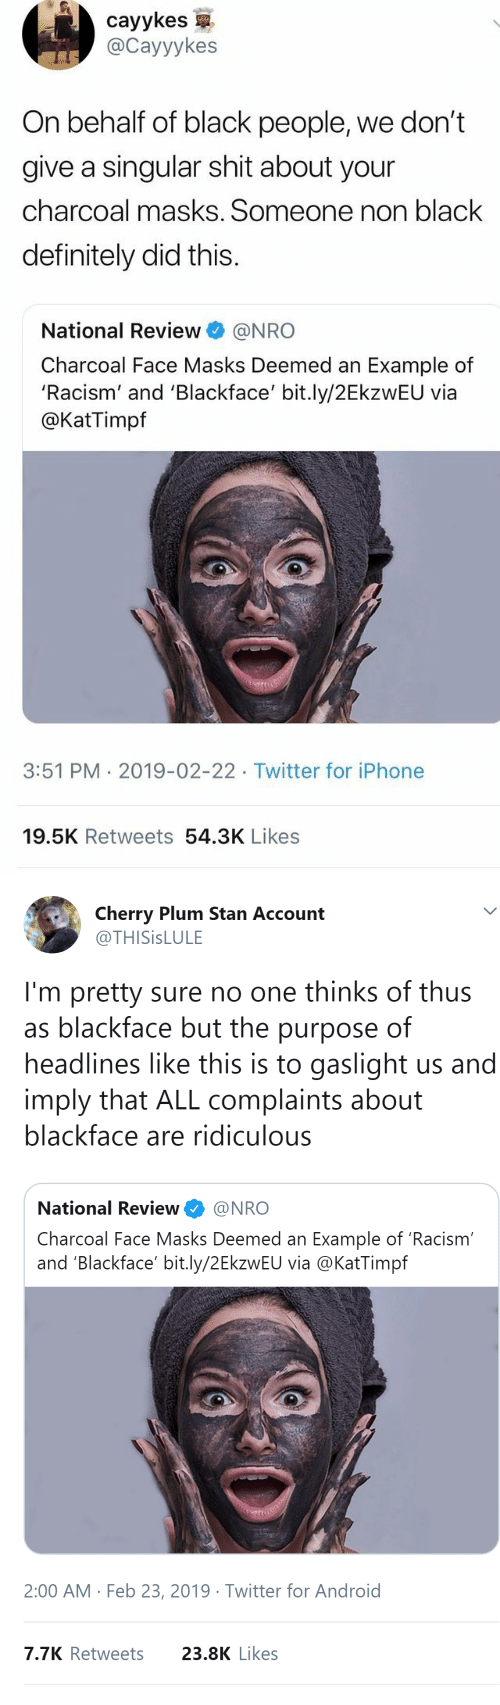 Blackface: cayykes  @Cayyykes  On behalf of black people, we don't  give a singular shit about your  charcoal masks. Someone non black  definitely did this.  National Review@NRO  Charcoal Face Masks Deemed an Example of  'Racism' and 'Blackface' bit.ly/2EkzwEU via  @KatTimpf  3:51 PM 2019-02-22 Twitter for iPhone  19.5K Retweets 54.3K Likes   Cherry Plum Stan Account  @THISİSLULE  I'm pretty sure no one thinks of thus  as blackface but the purpose of  headlines like this is to gaslight us and  imply that ALL complaints about  blackface are ridiculous  National Review@NRO  Charcoal Face Masks Deemed an Example of 'Racism  and 'Blackface' bit.ly/2EkzwEU via @KatTimpf  2:00 AM Feb 23, 2019 Twitter for Android  7.7K Retweets  23.8K Likes